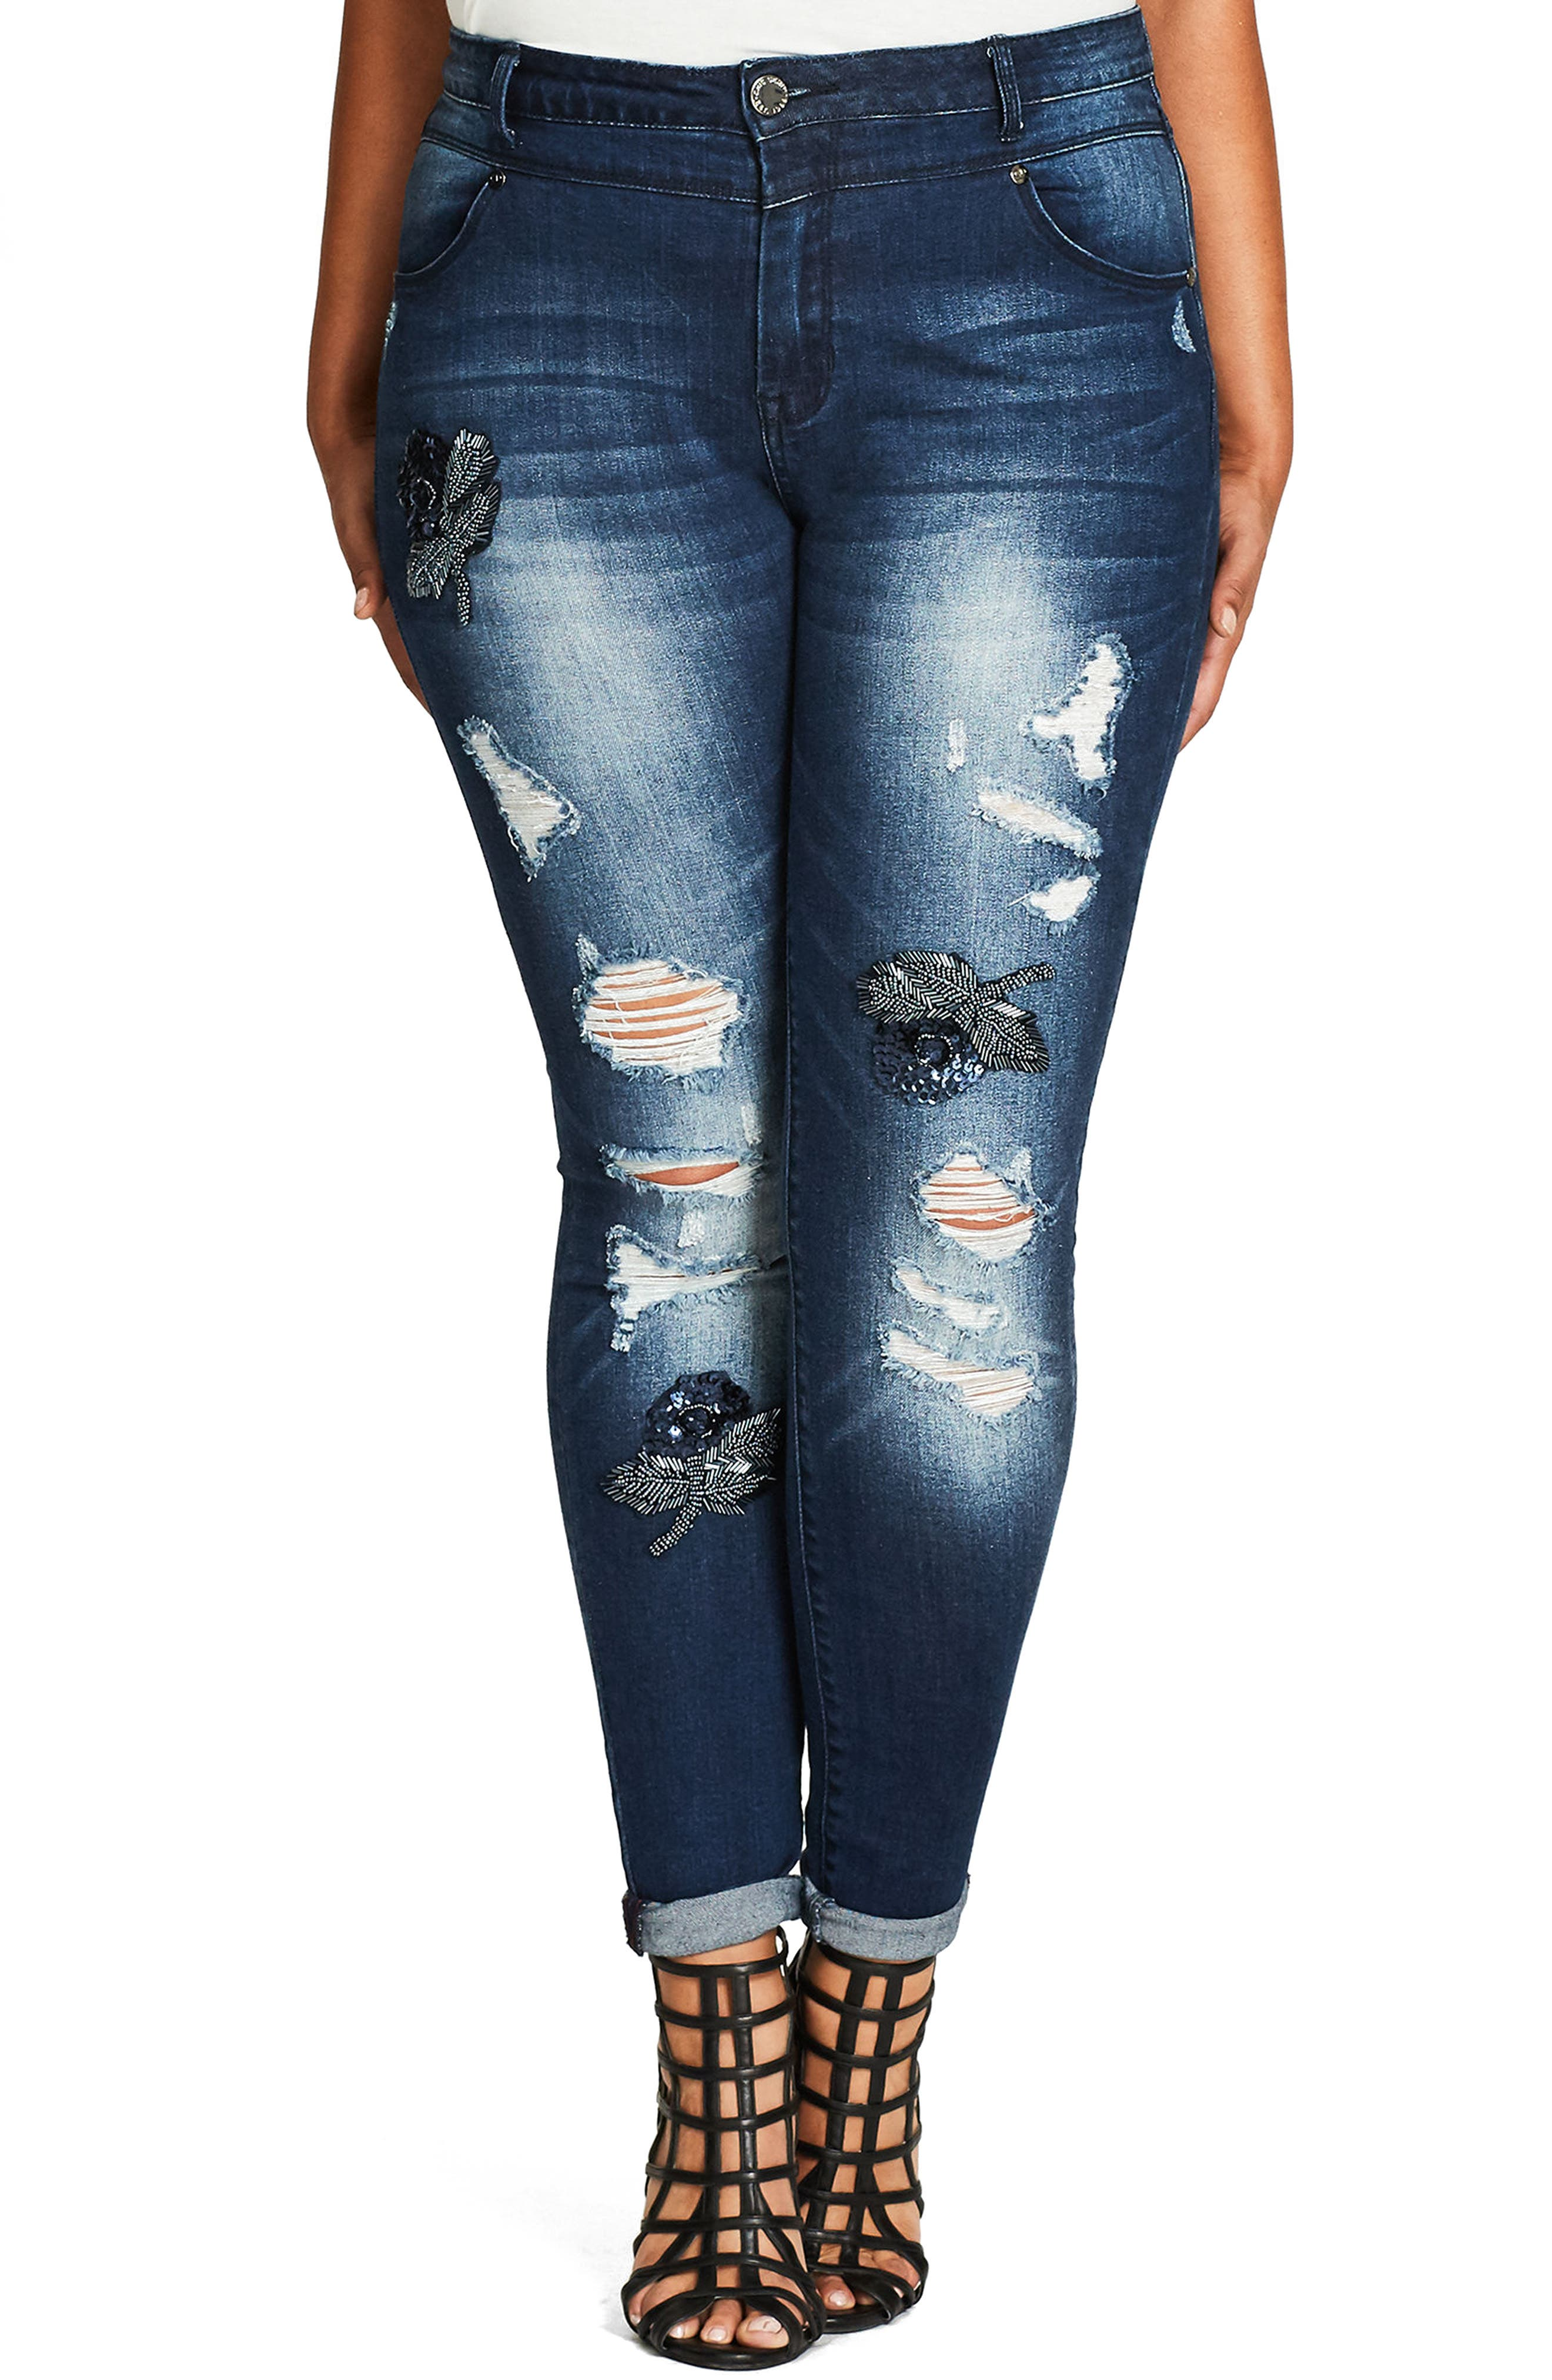 City Chic Embellished Destroyed Skinny Jeans (Plus Size)